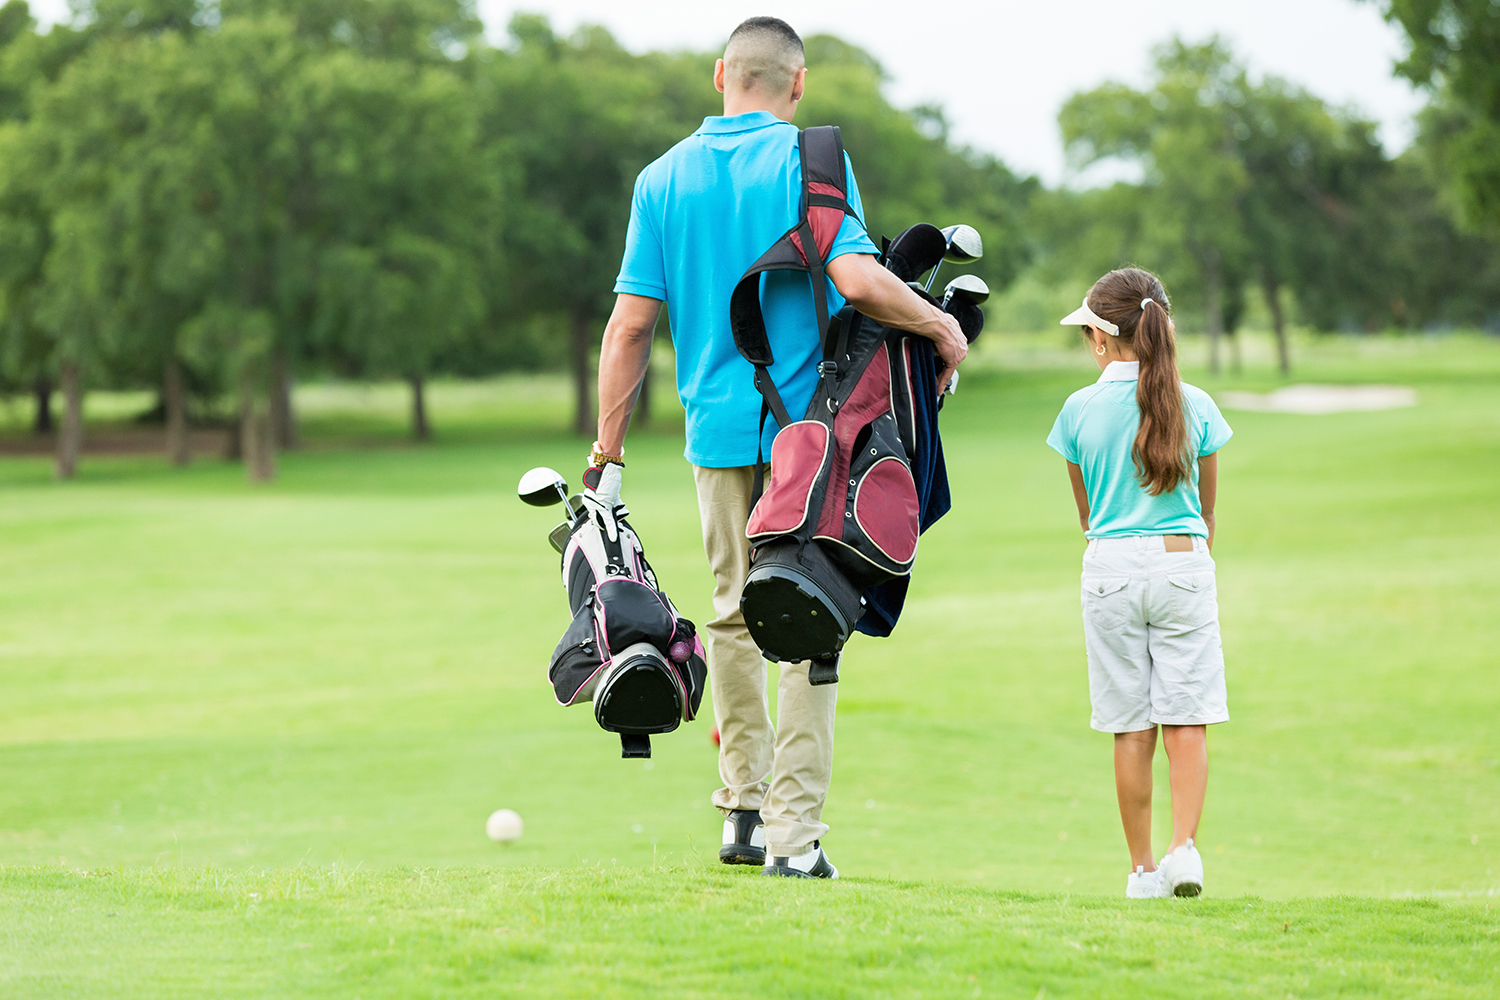 Parent/Child Golf Lessons at Little Hay